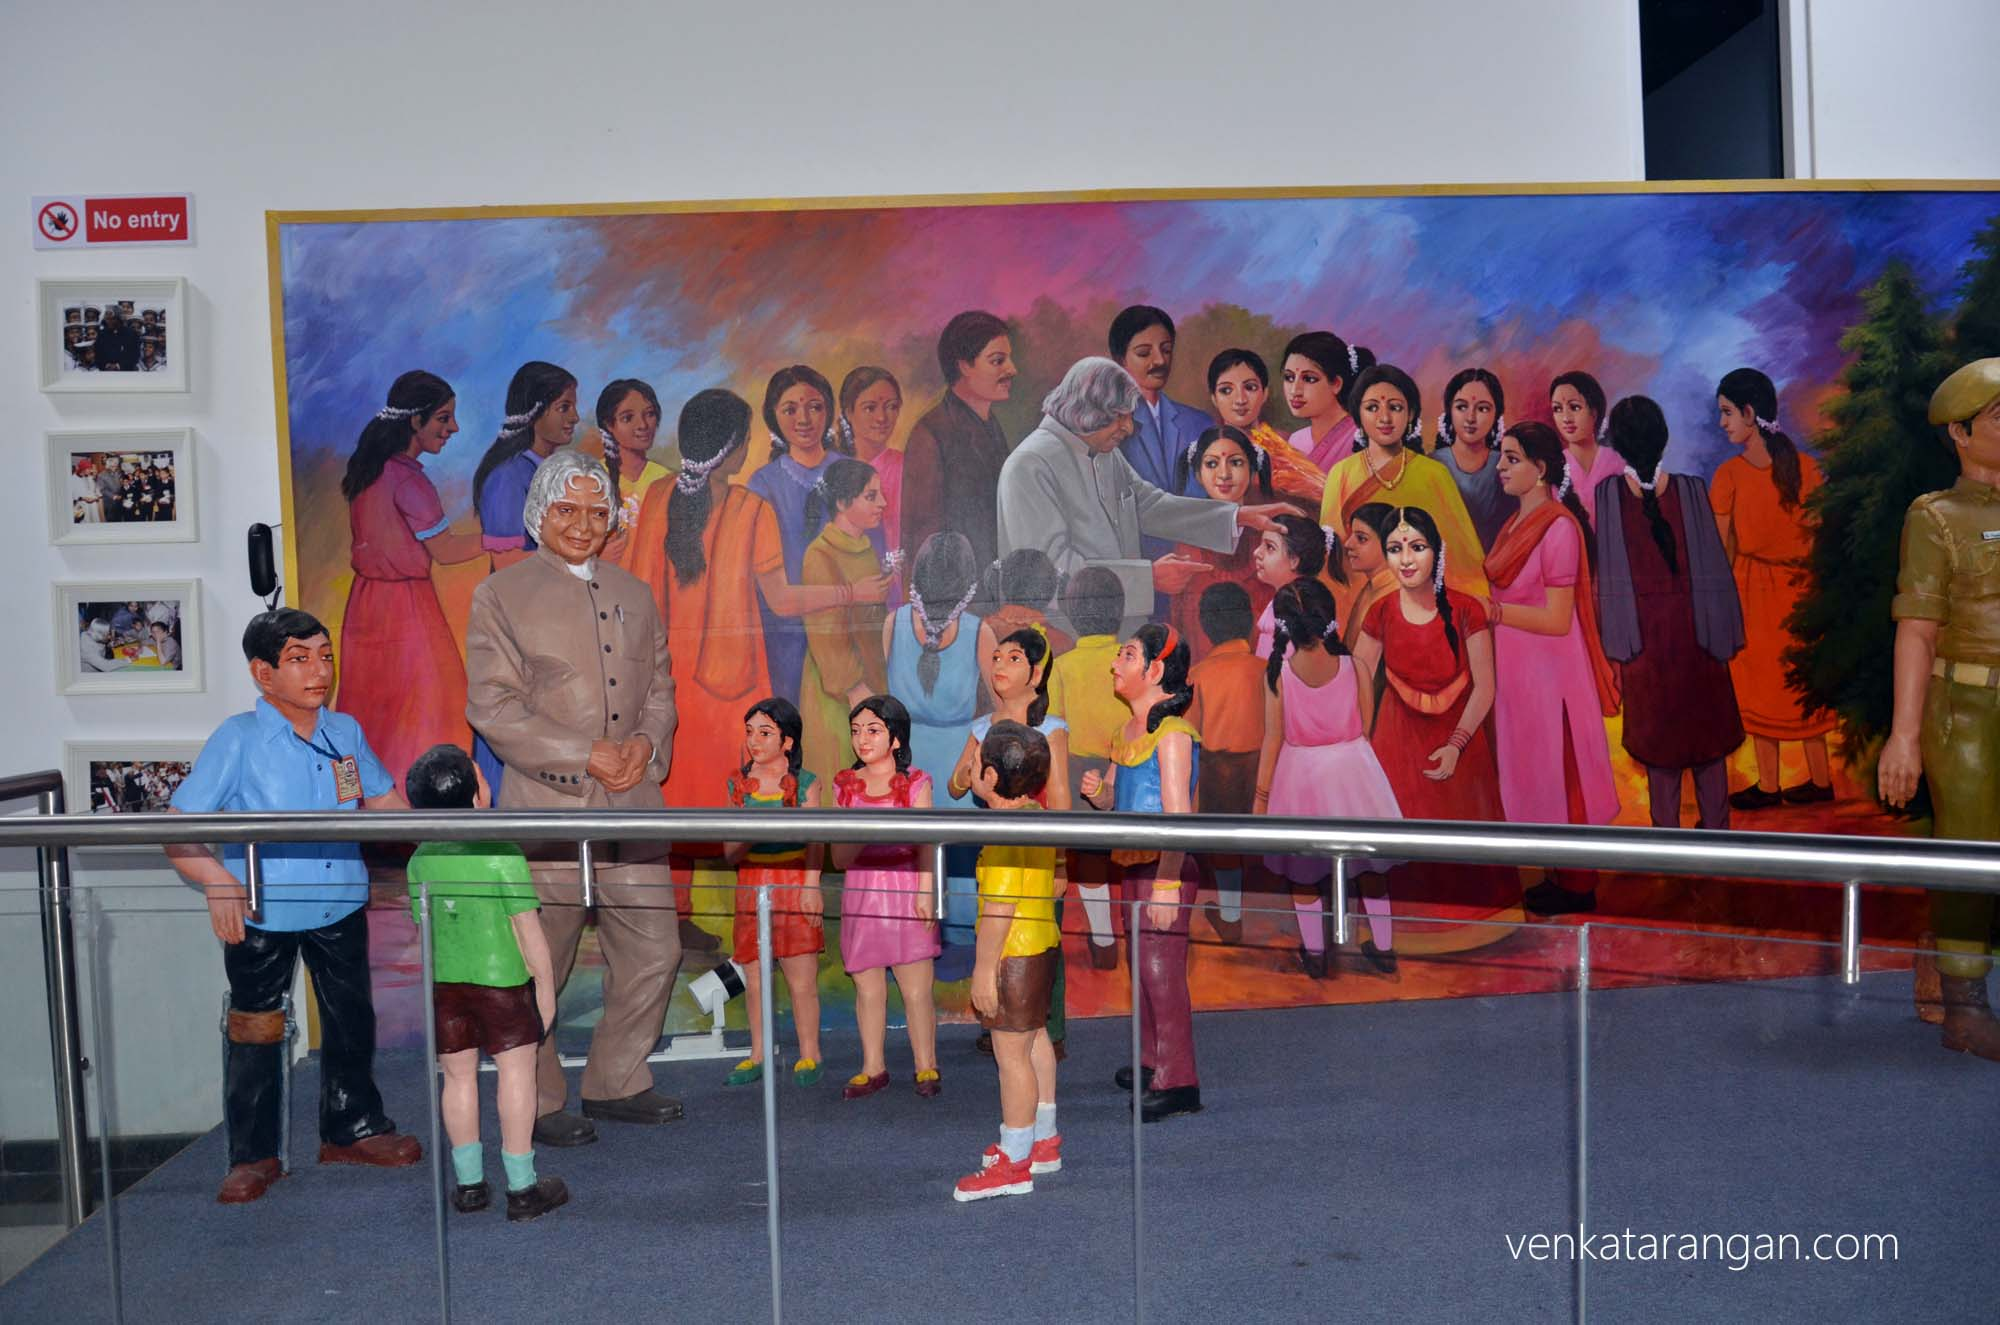 Dr Kalam loved children, talking to them, inspiring them